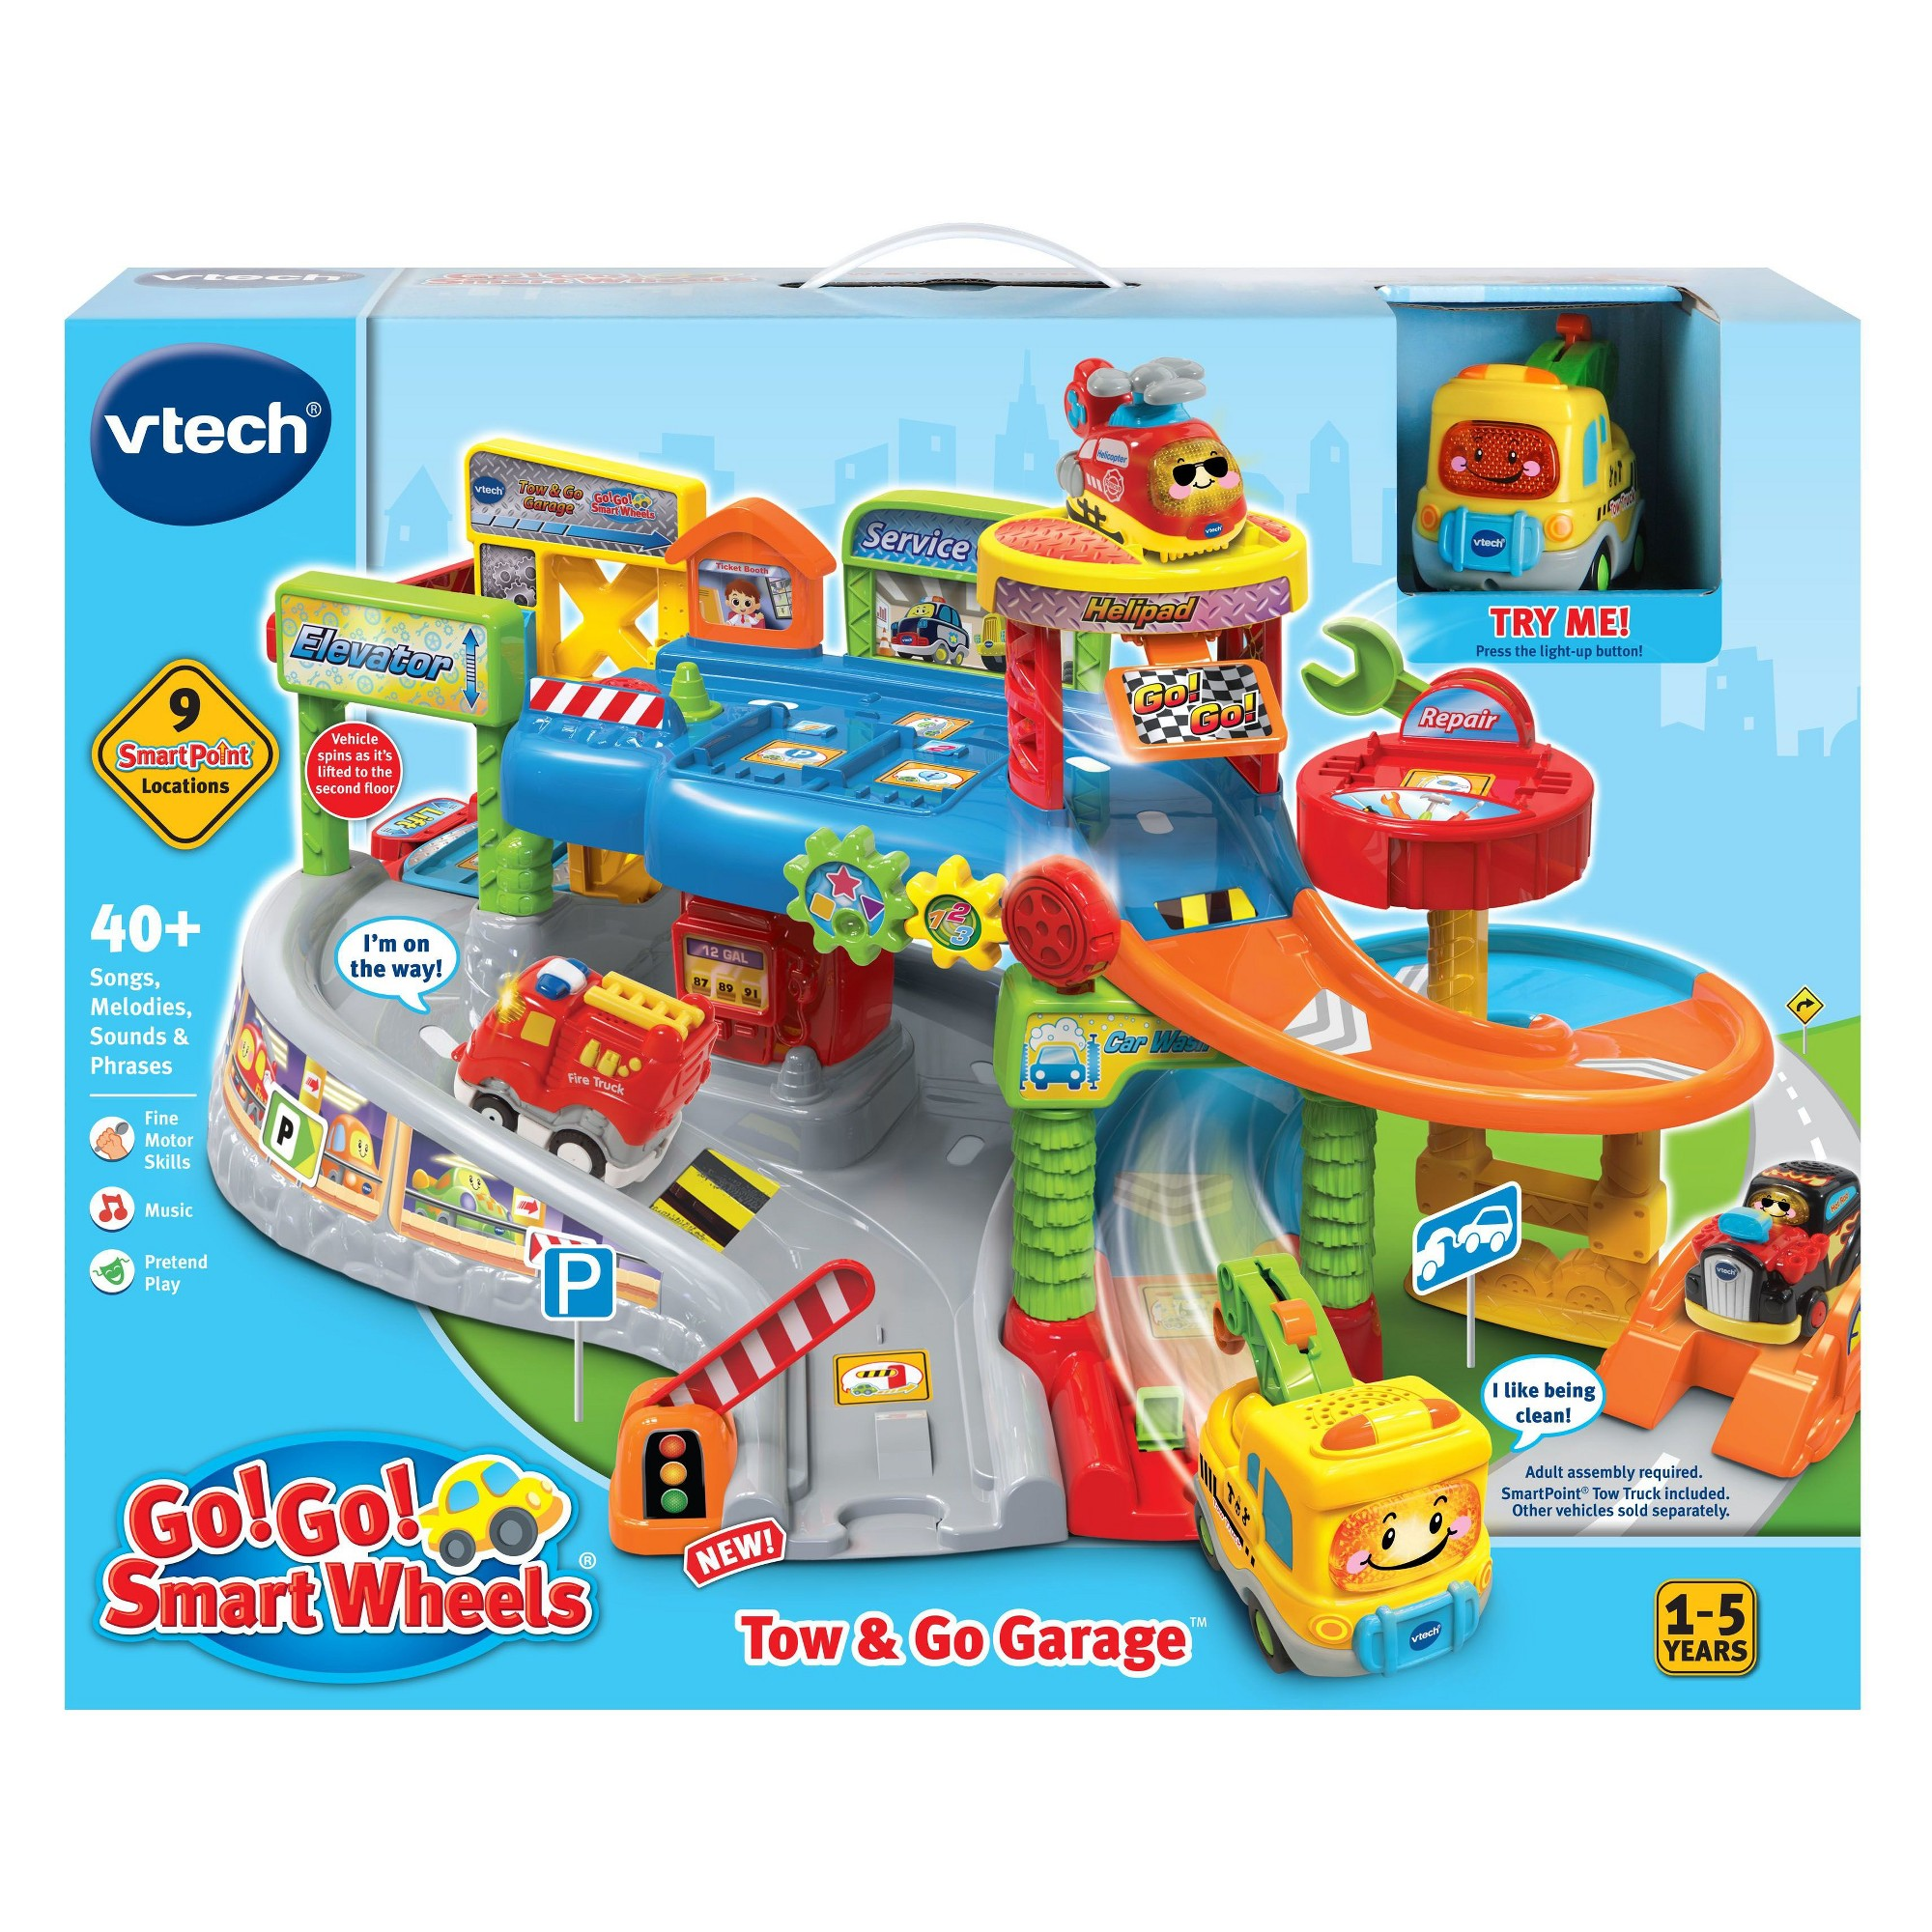 Vtech Go Go Smart Wheels Tow Go Garage Garage Vtech Towing